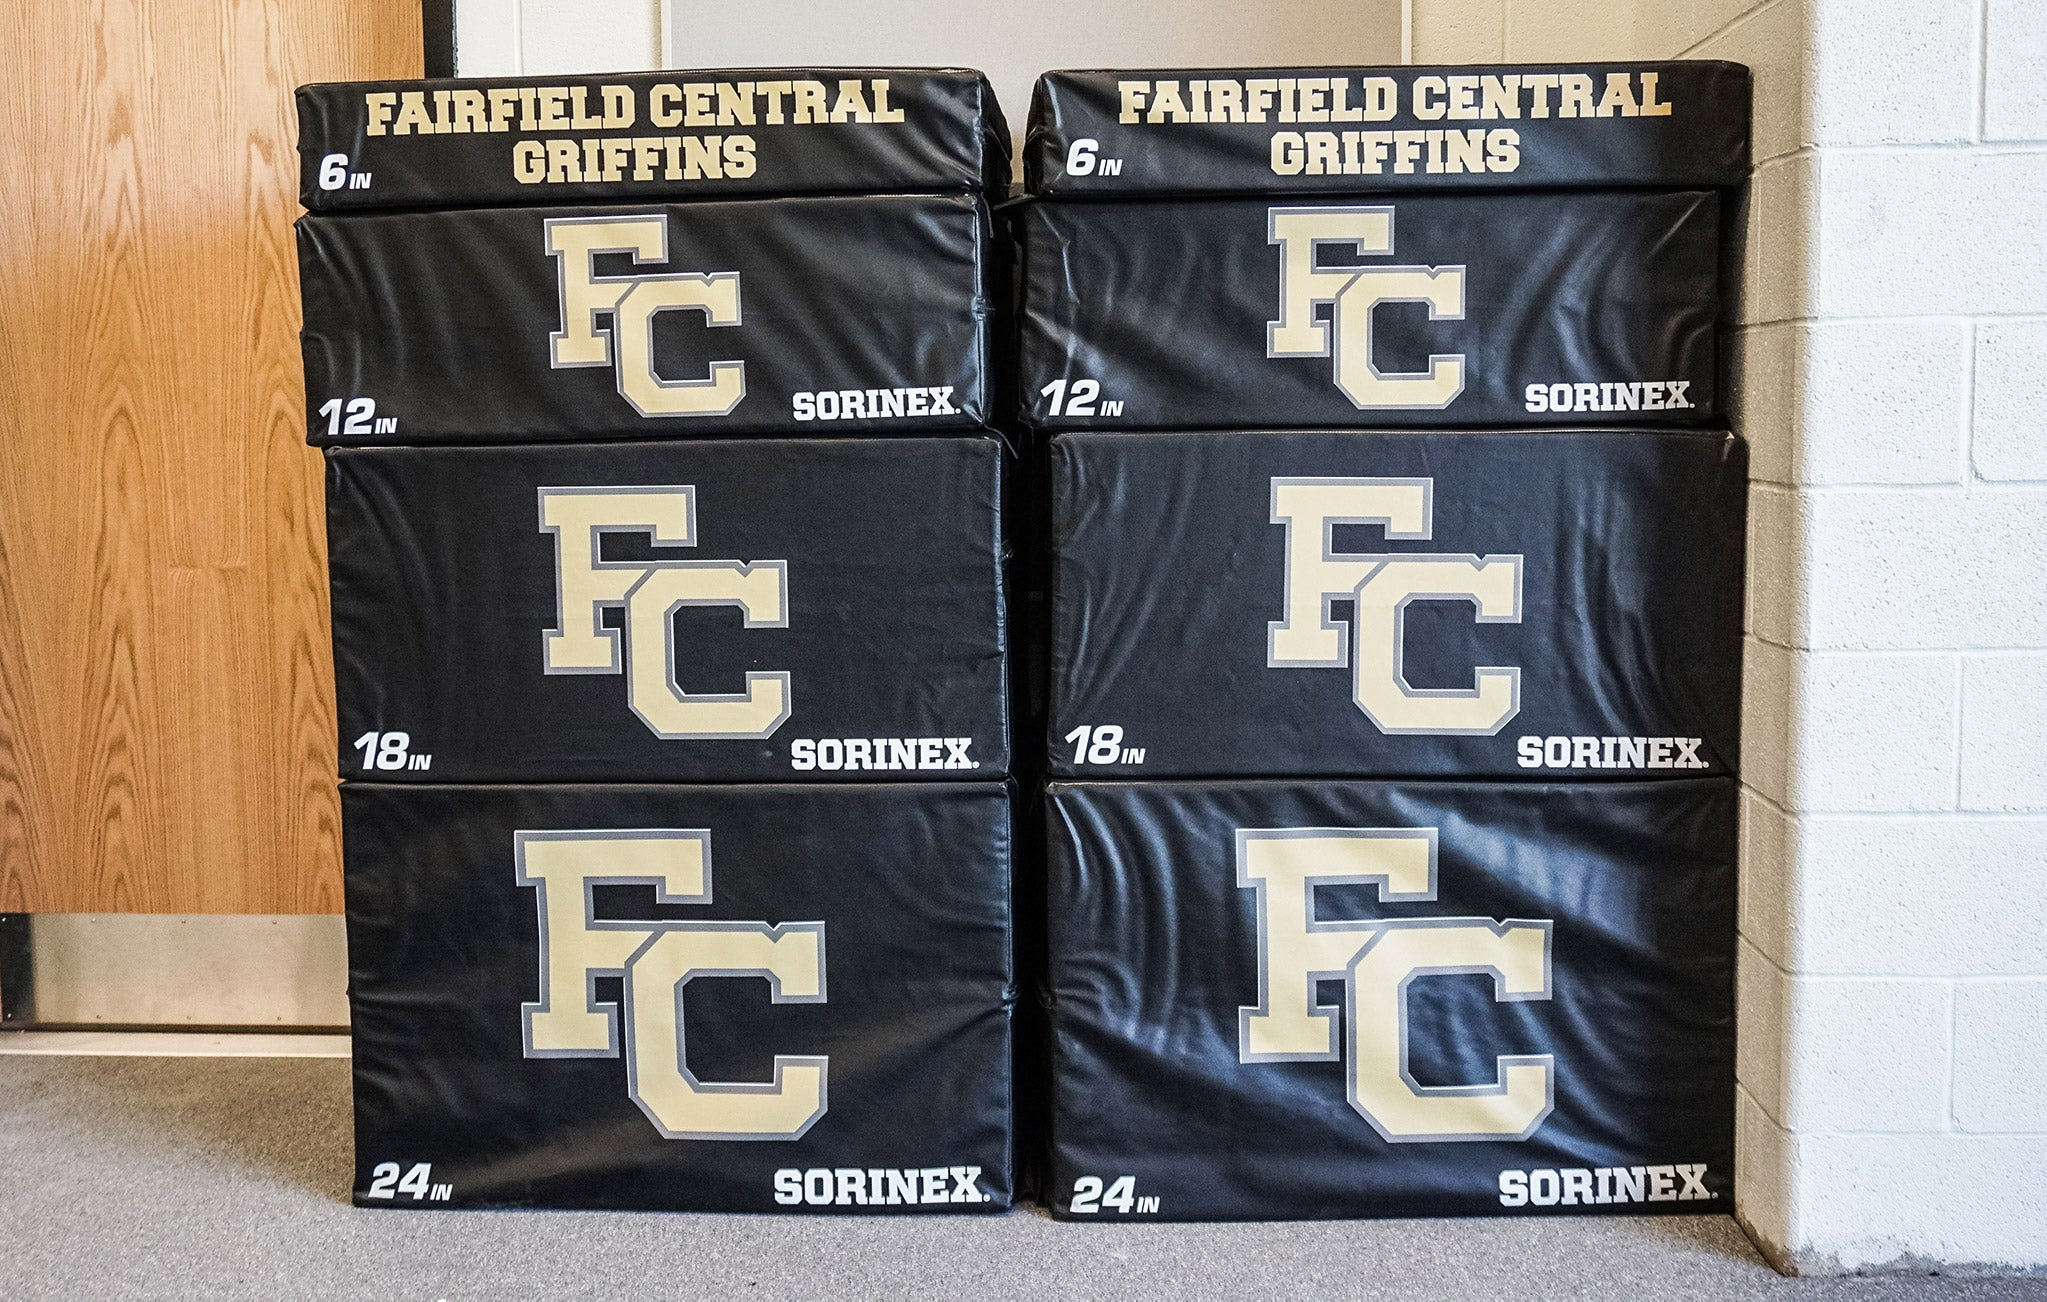 Fairfield Central High School strength training